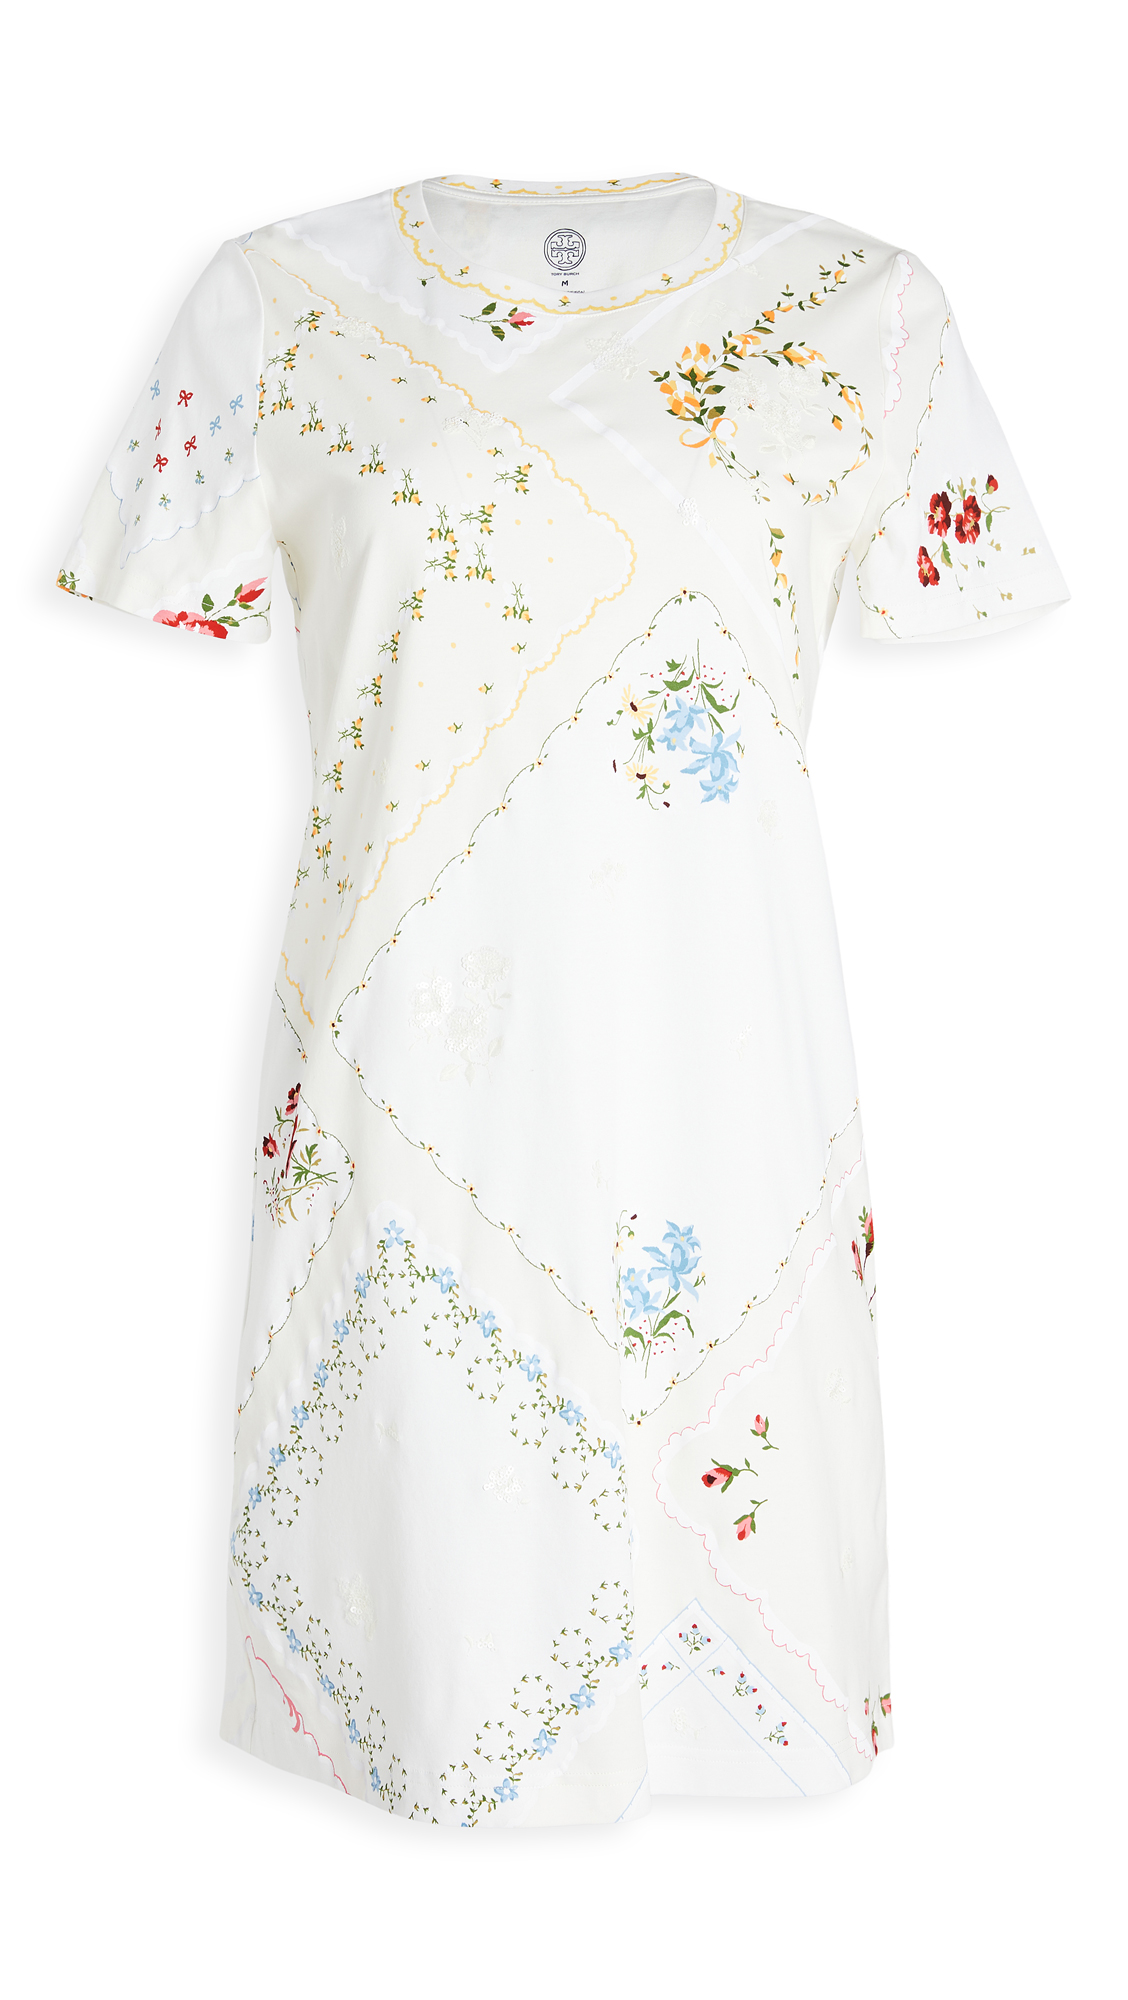 Tory Burch Afternoon Tee Dress